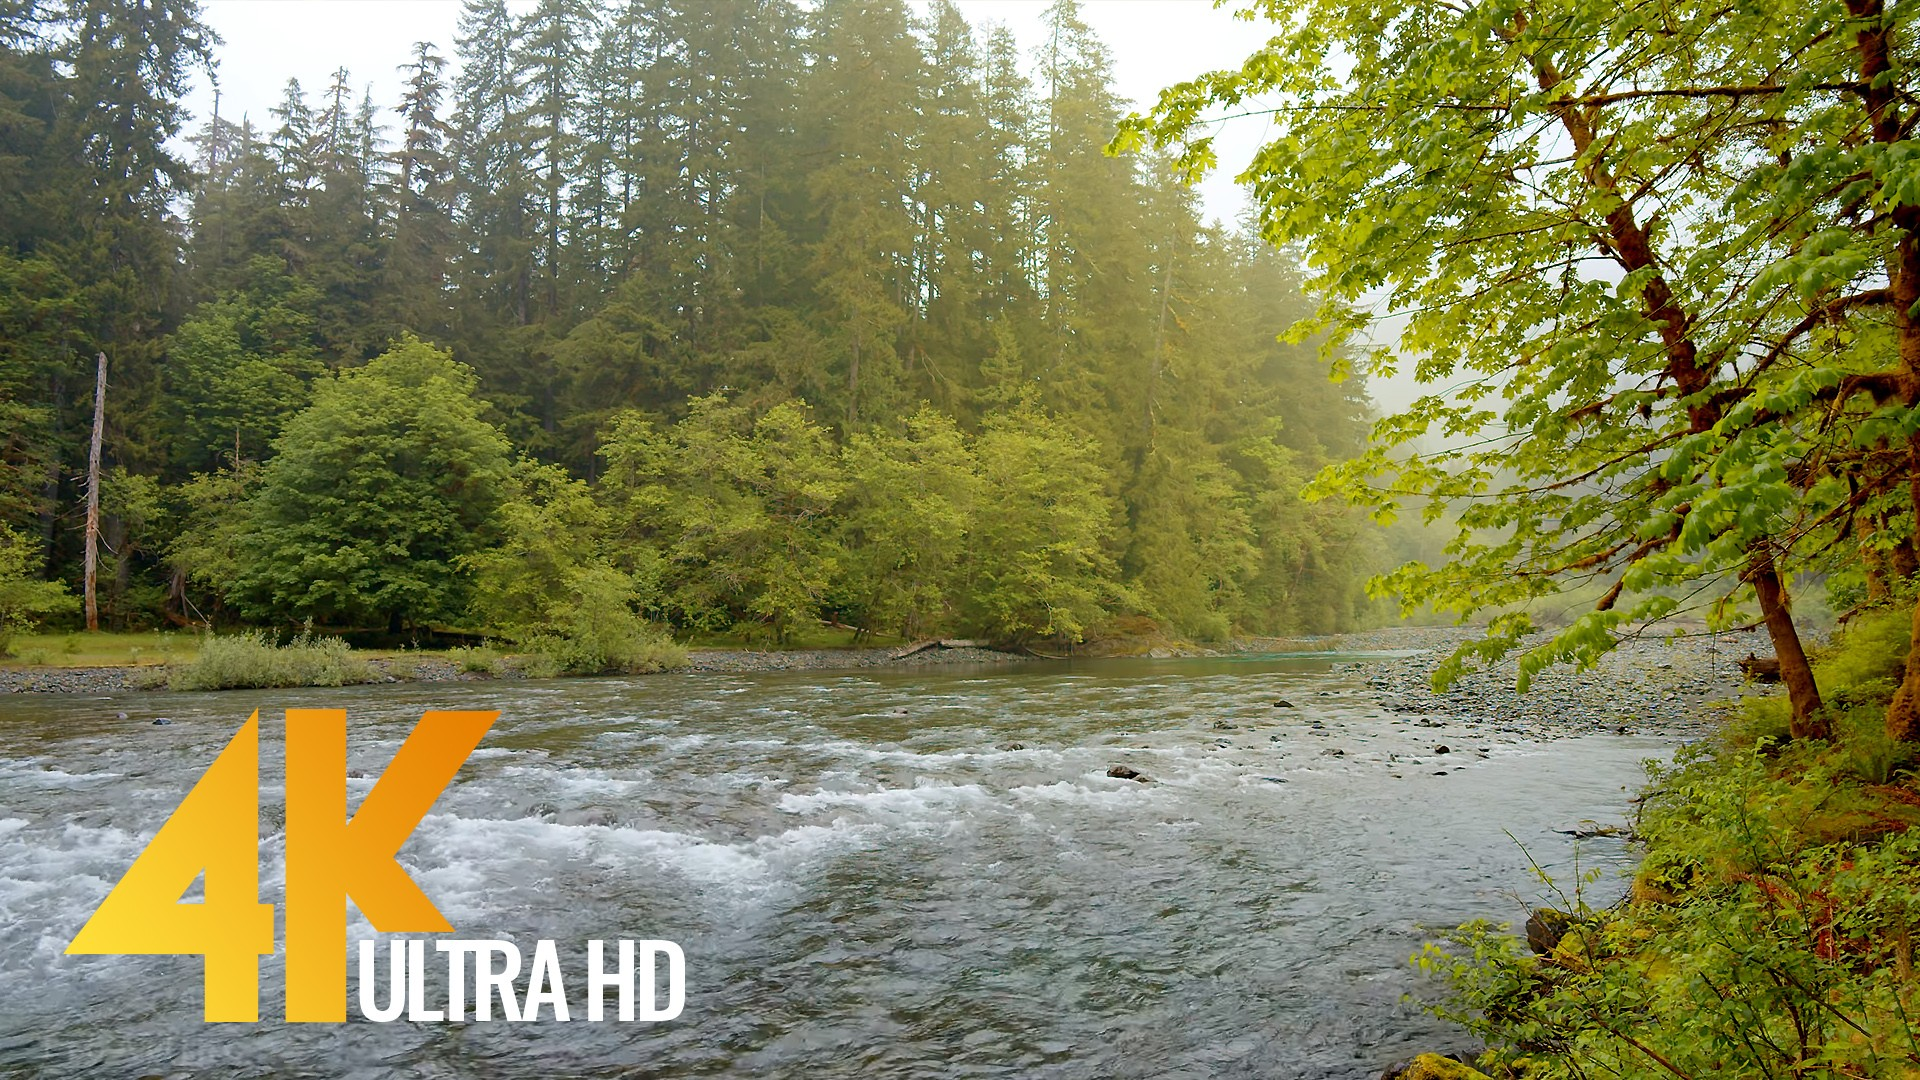 Relaxing River Scenery – Olympic National Park